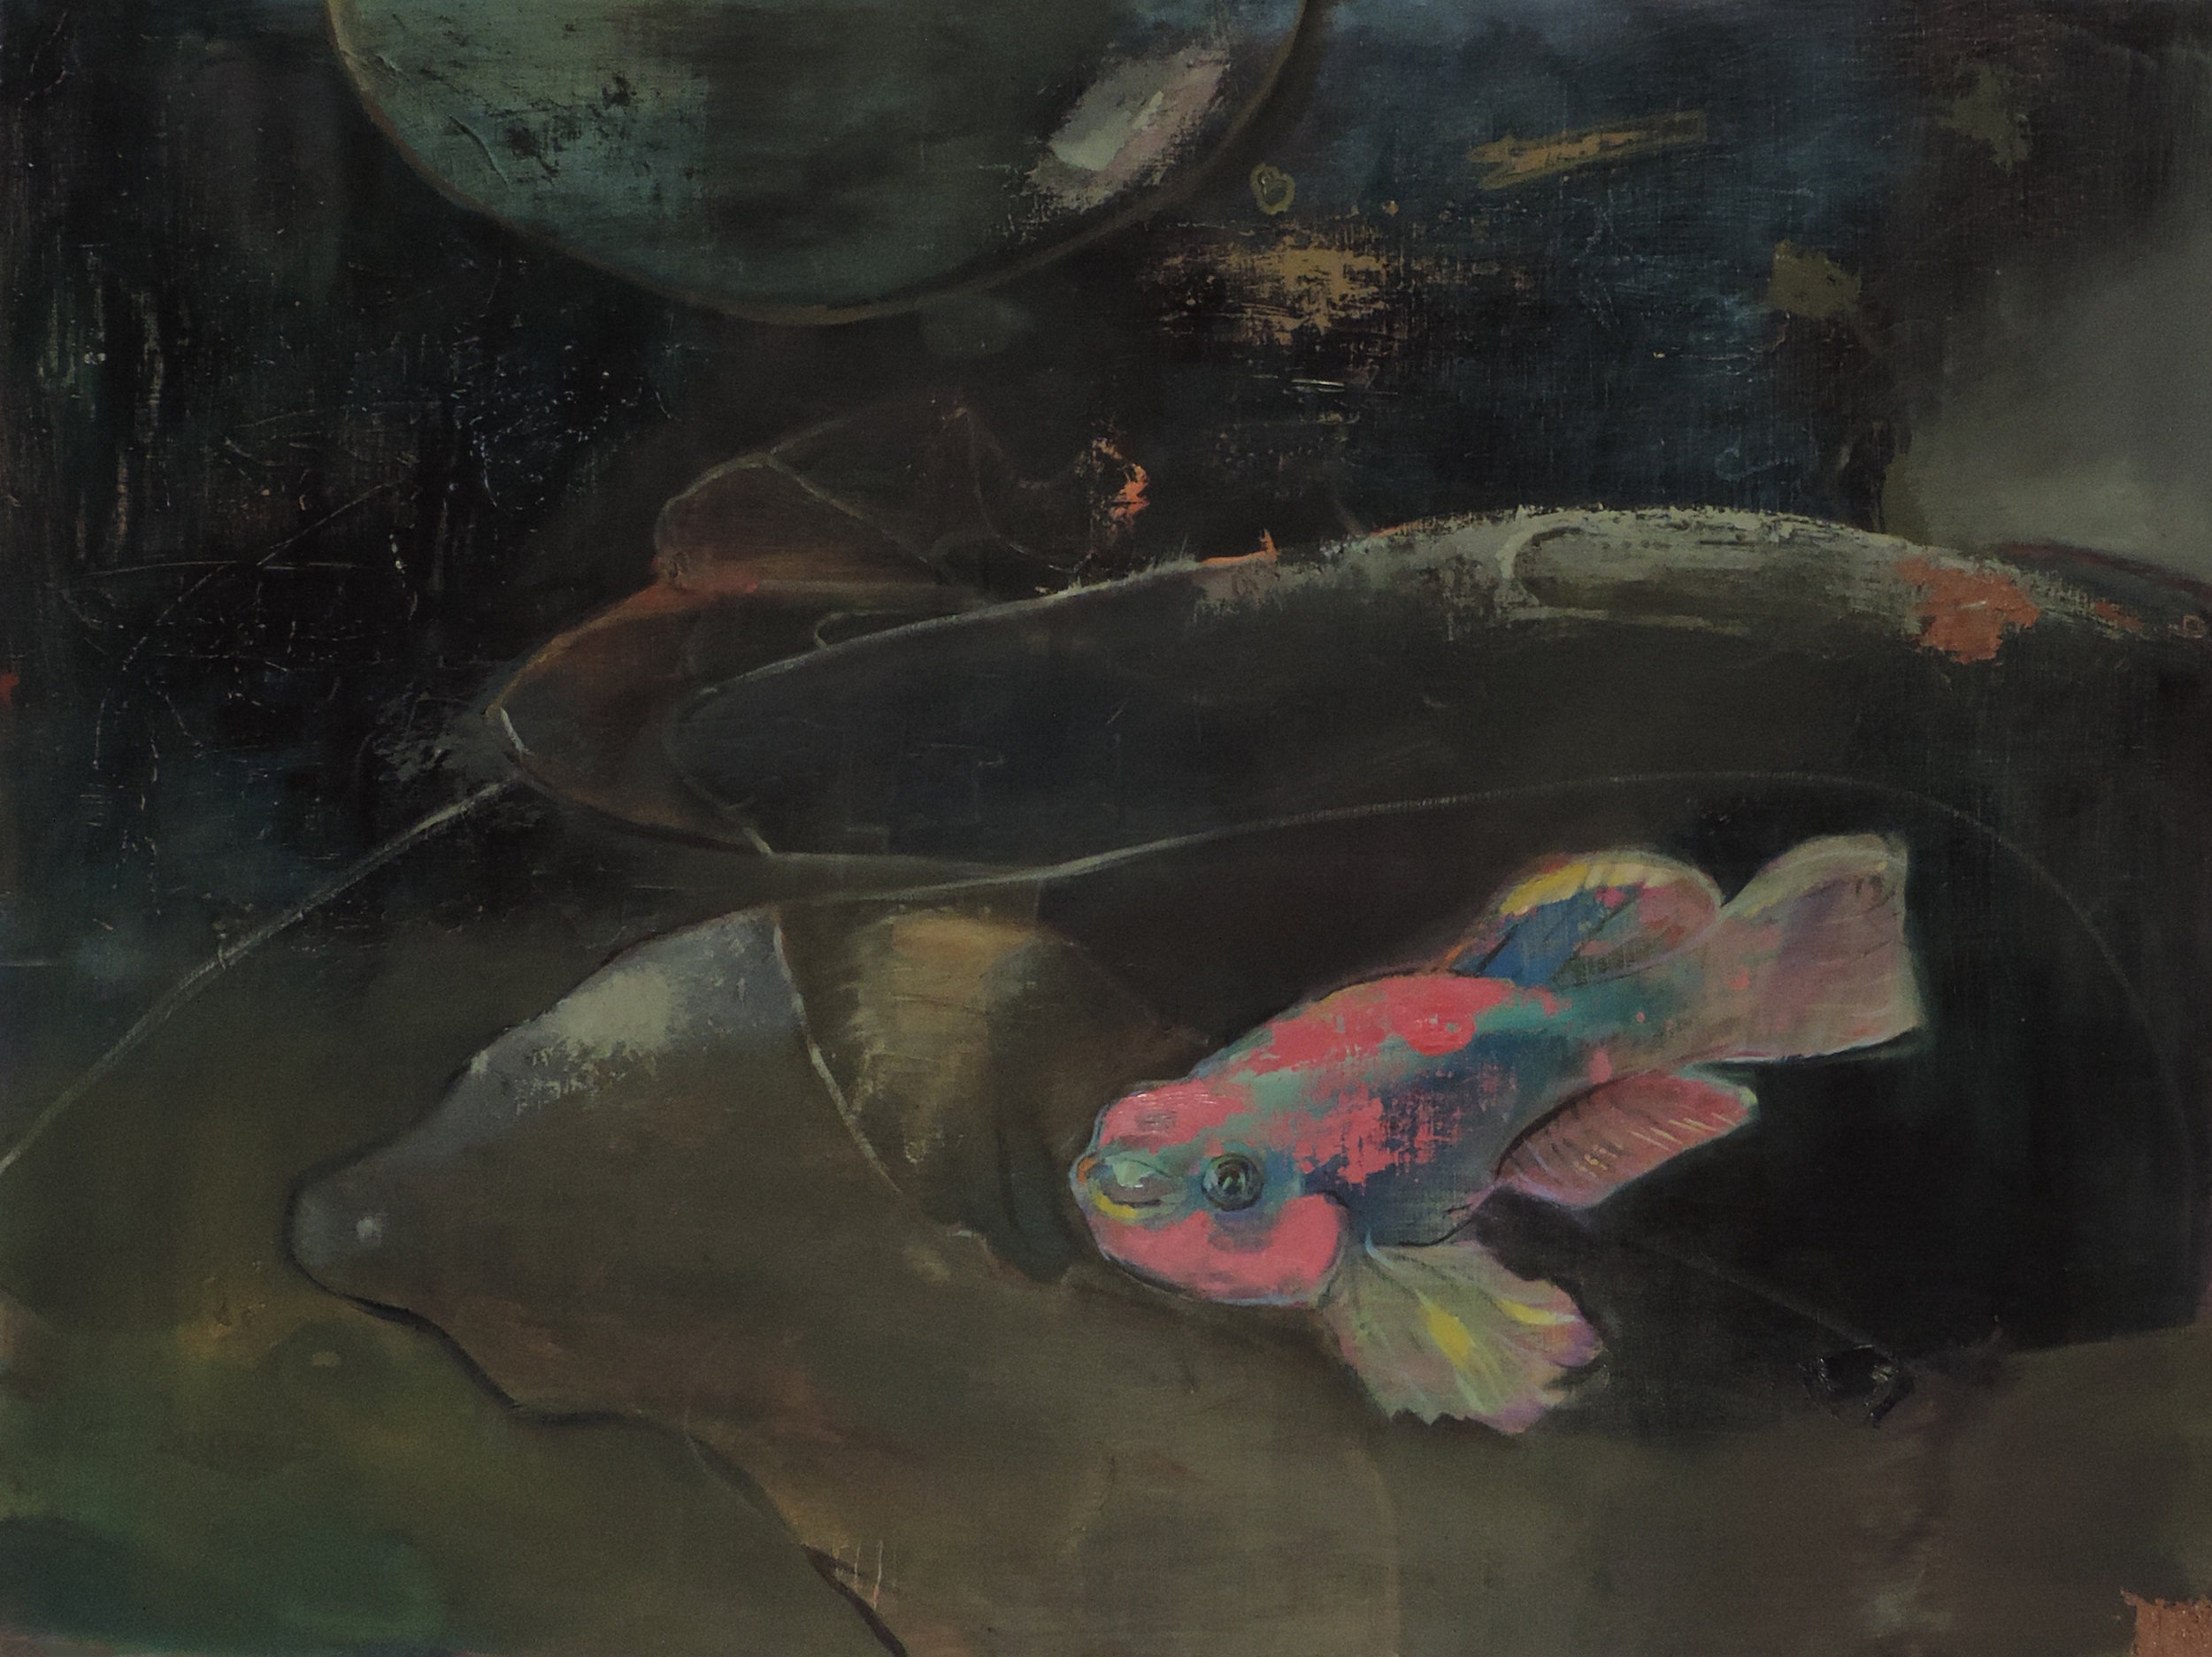 Fish Painting  oil and acrylic on canvas. 35.5 inches x 47.5 inches